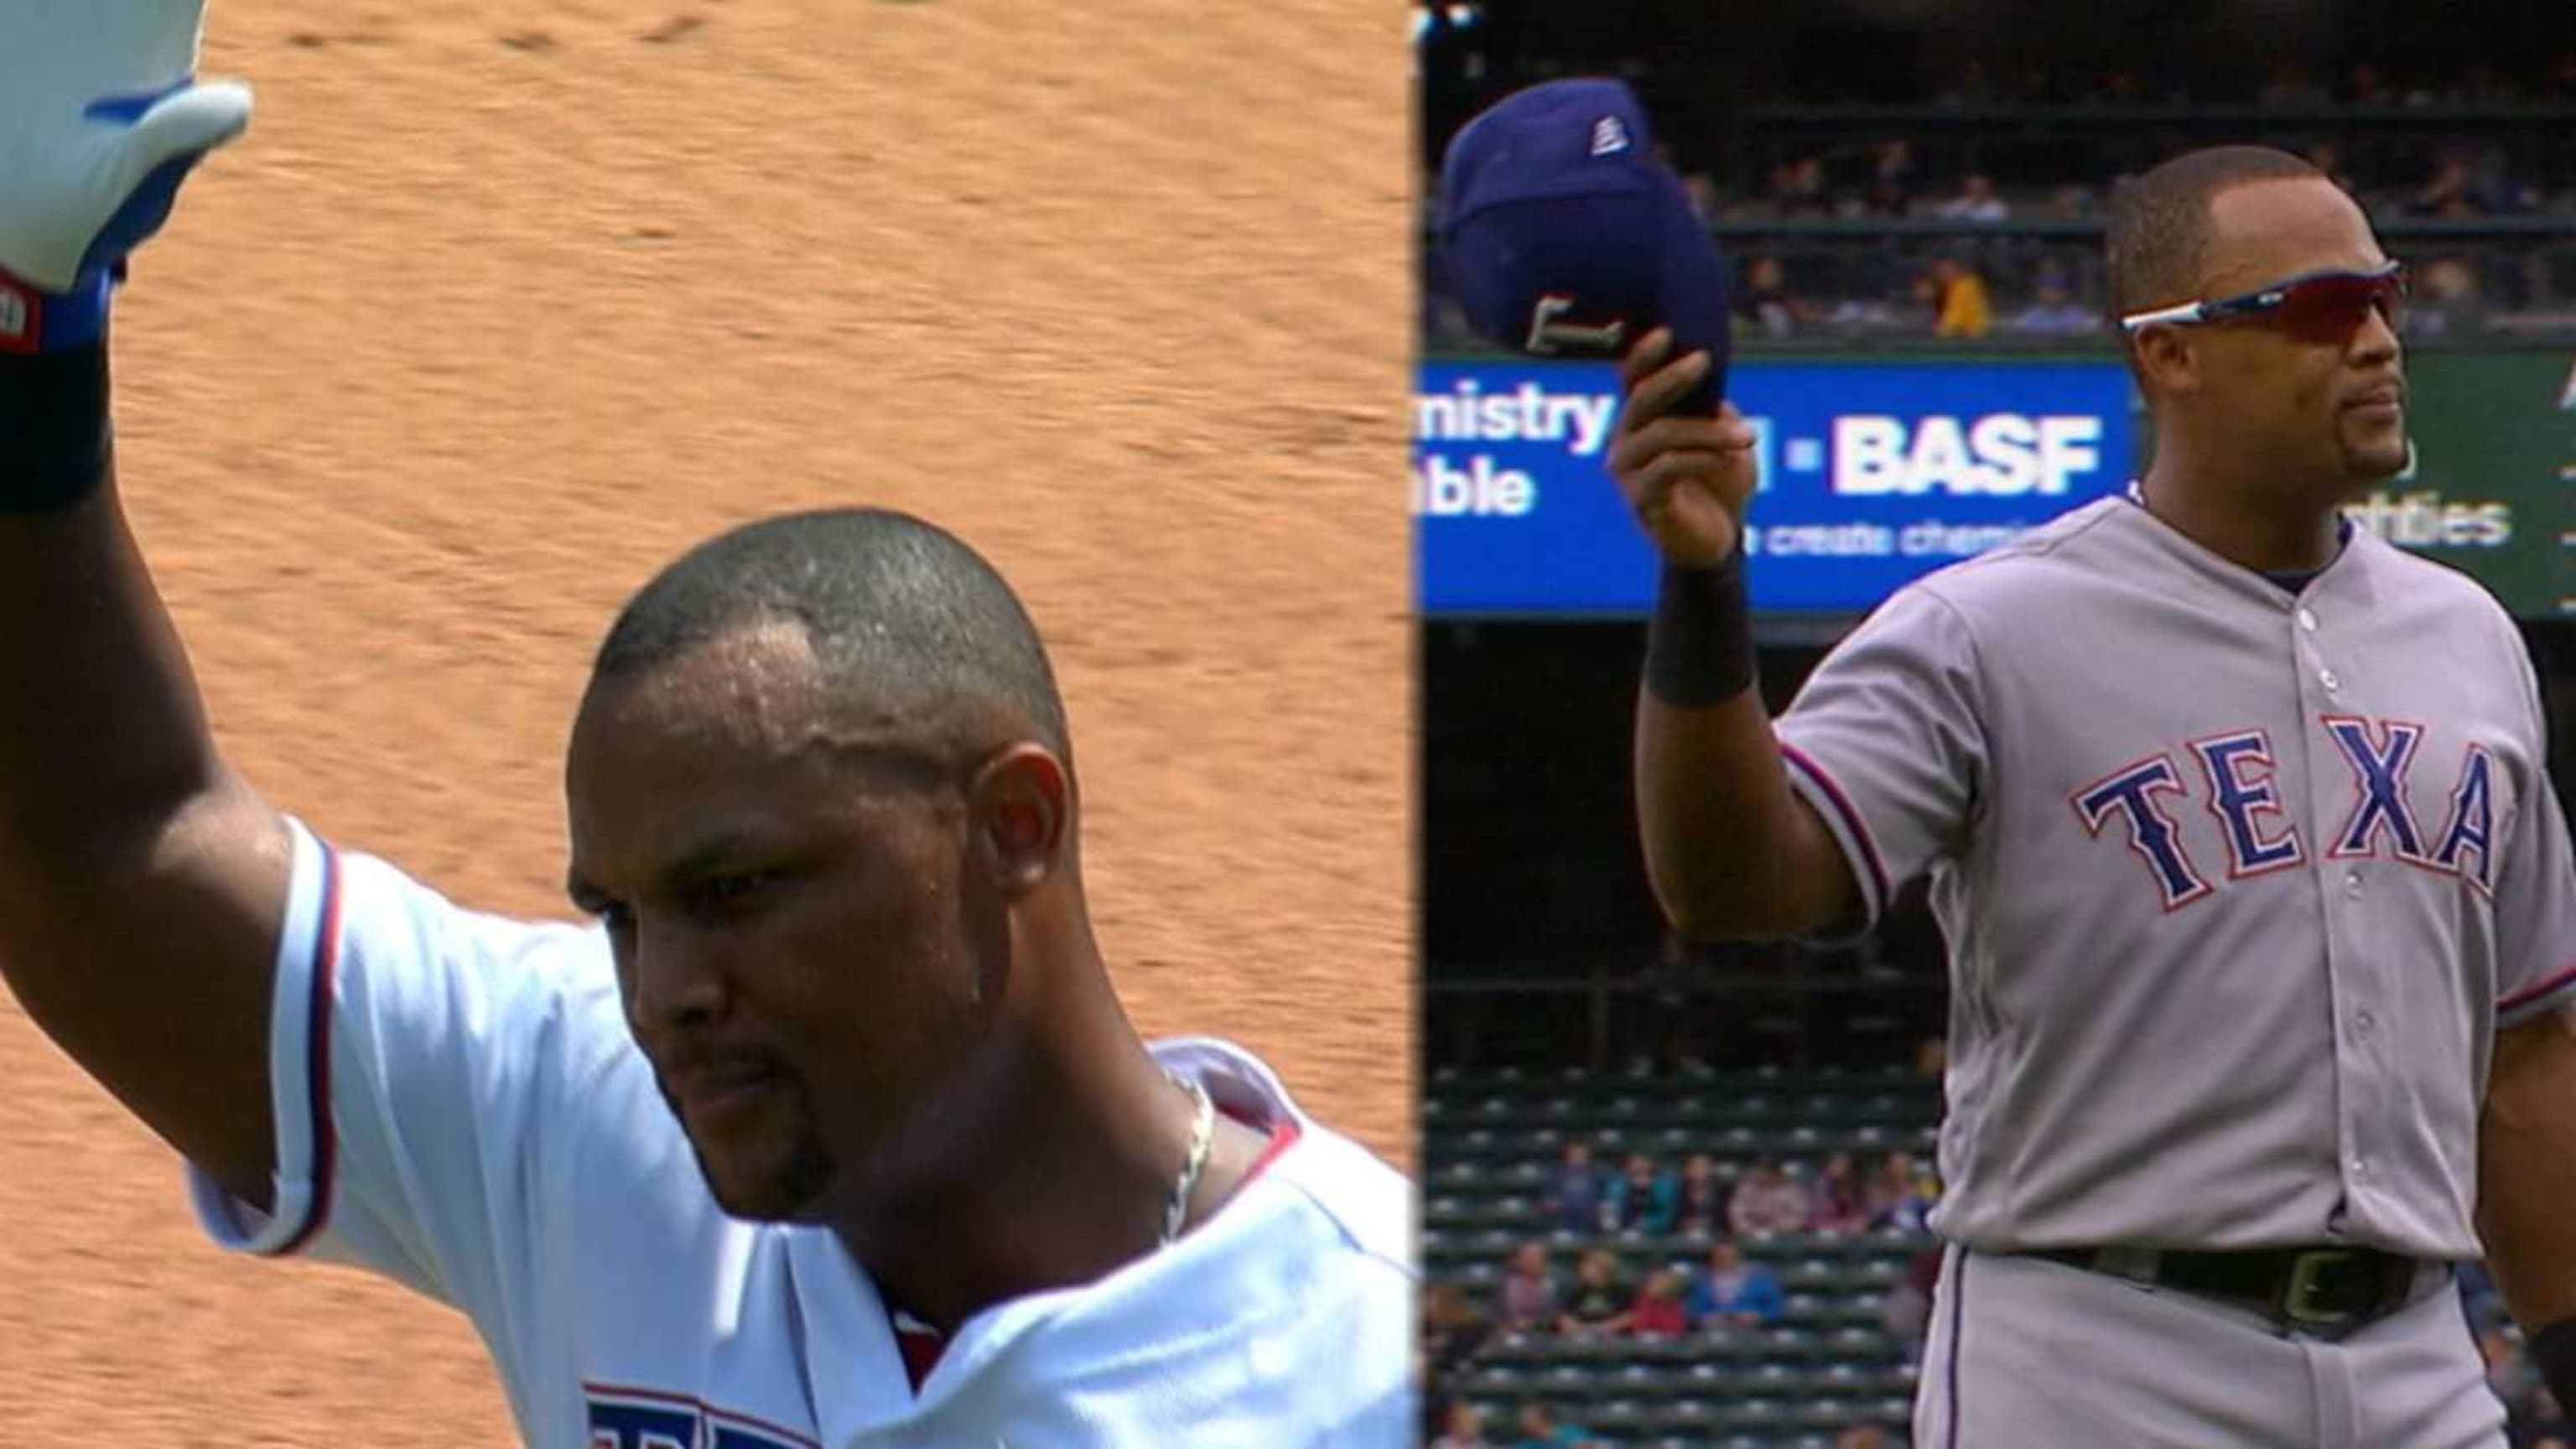 Beltre's Rangers moments